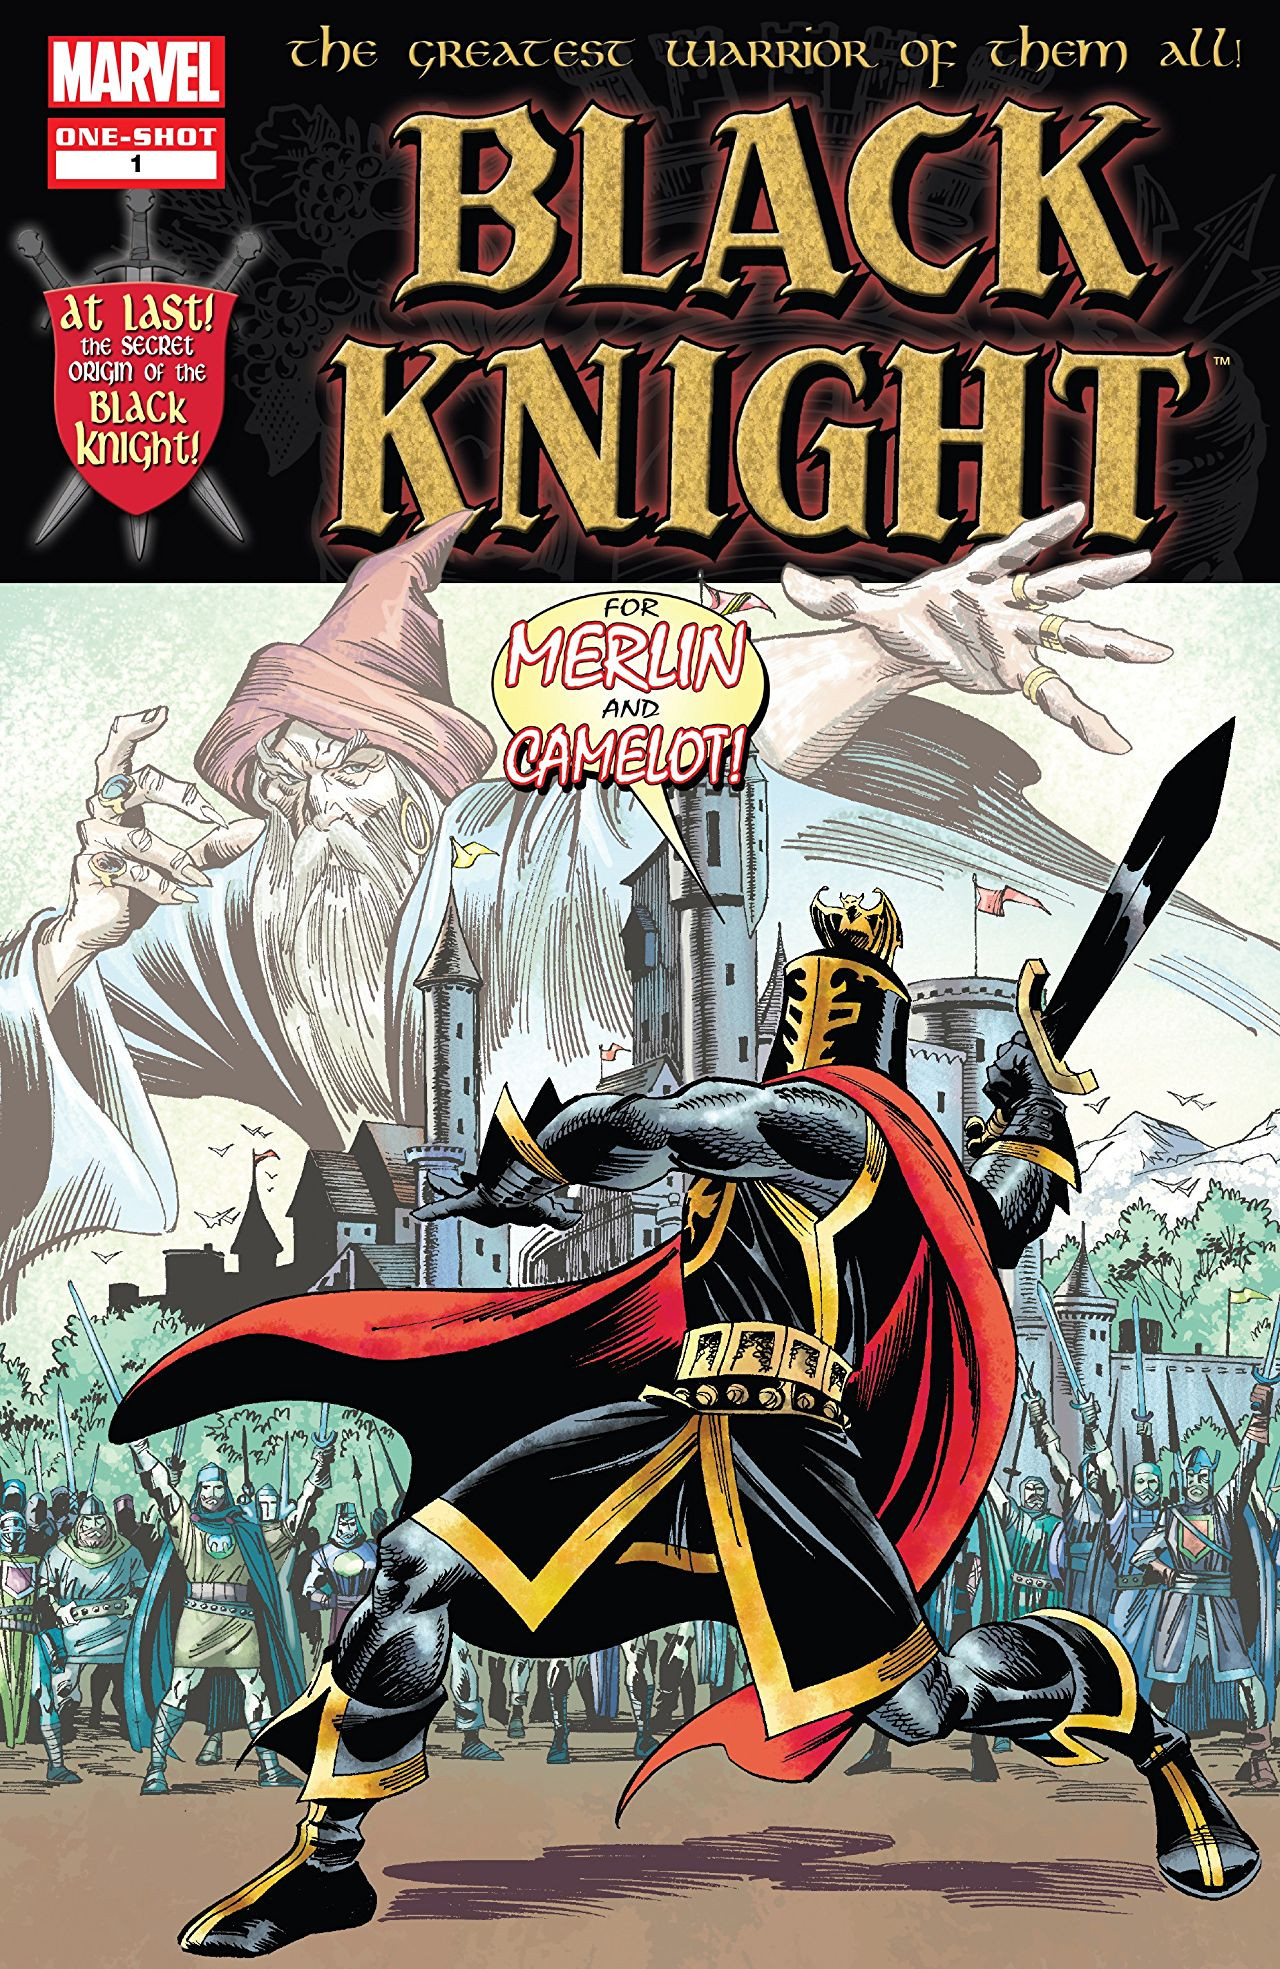 Black Knight (MDCU) Vol 1 1